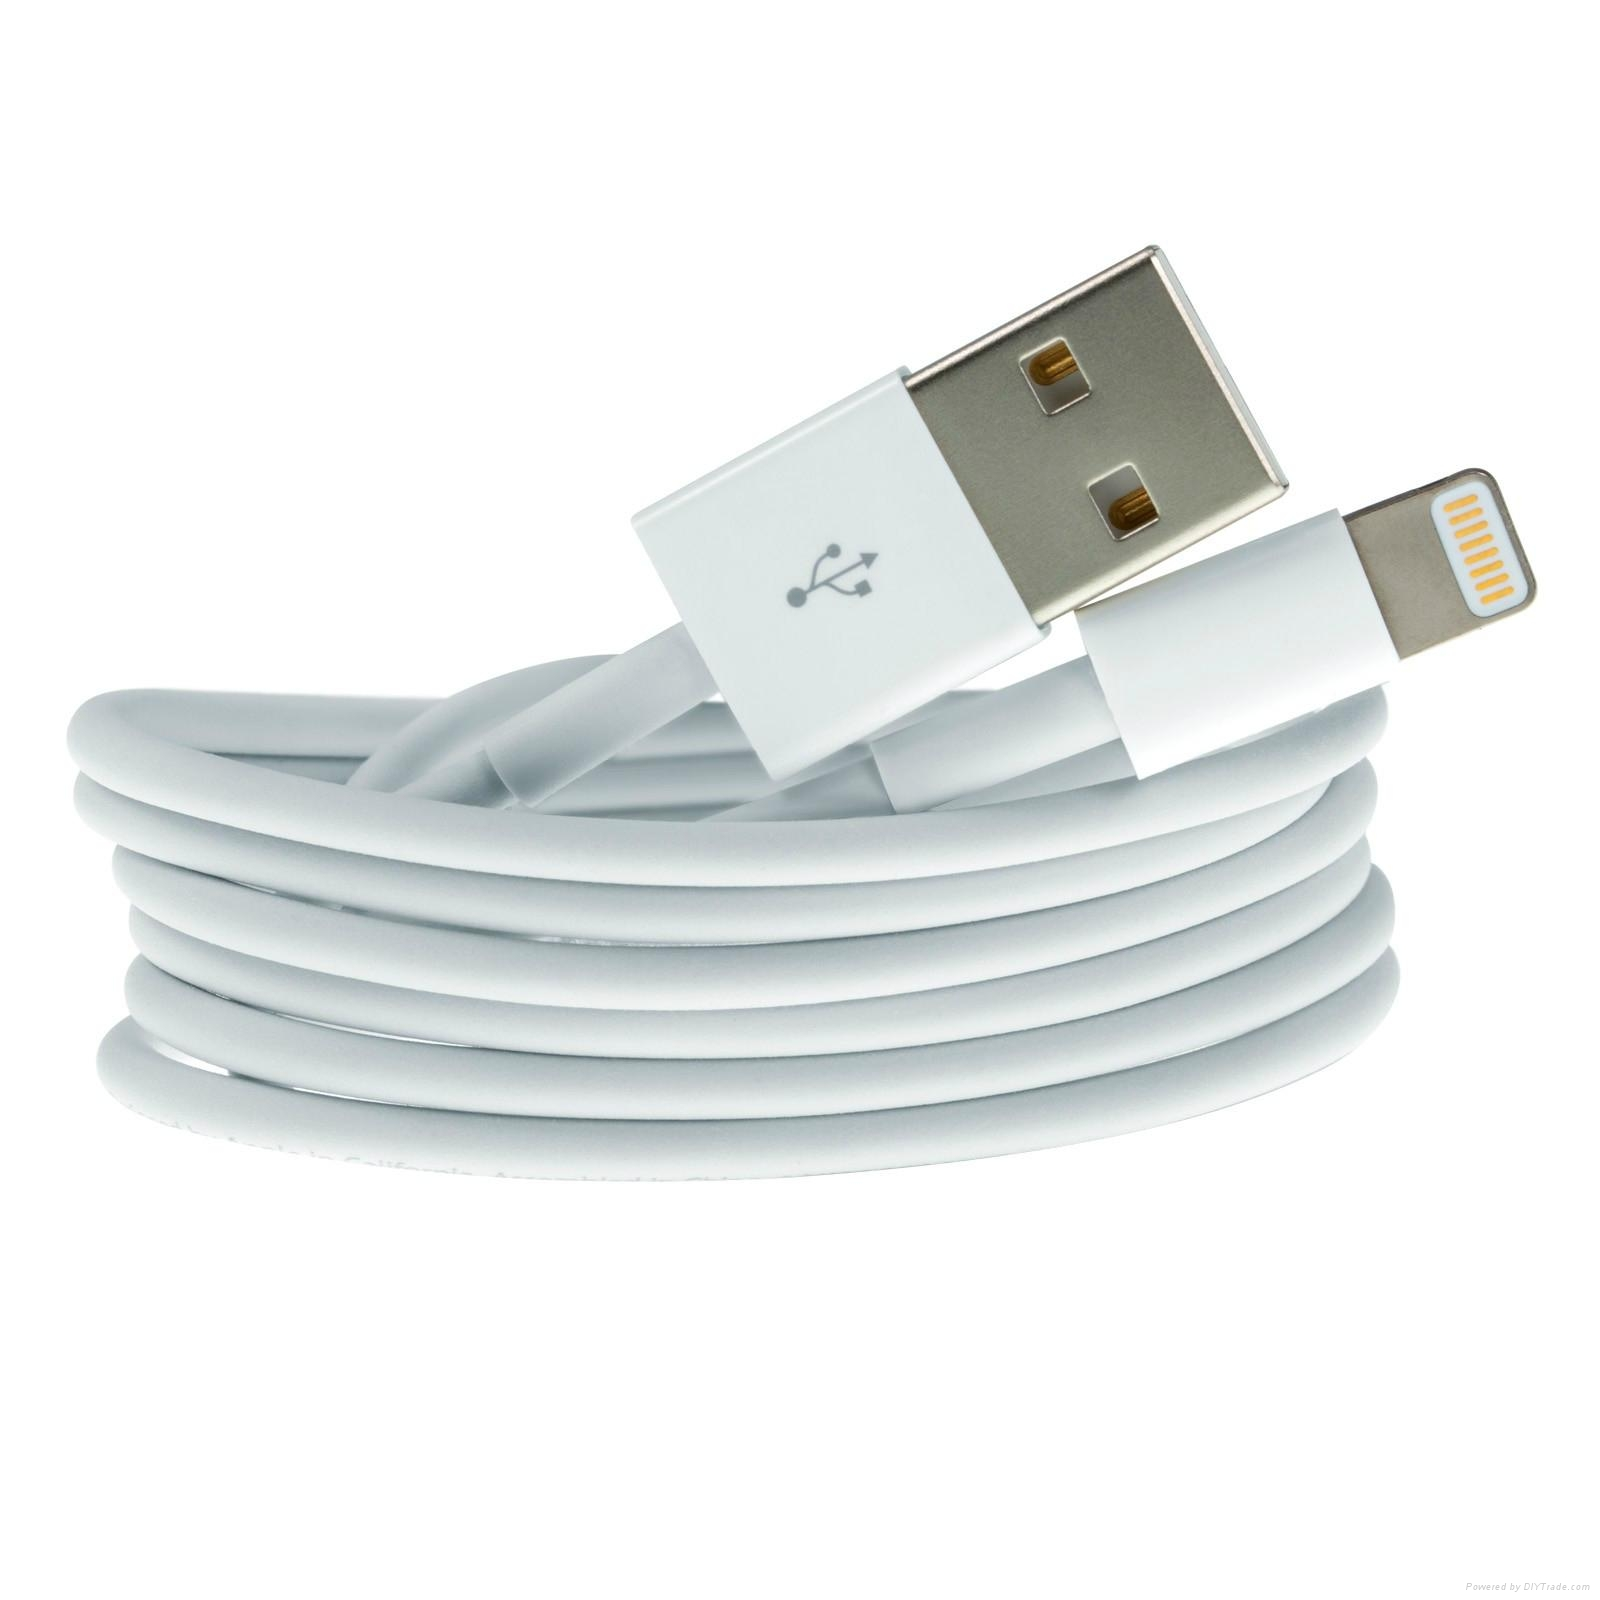 Official Iphone Cable